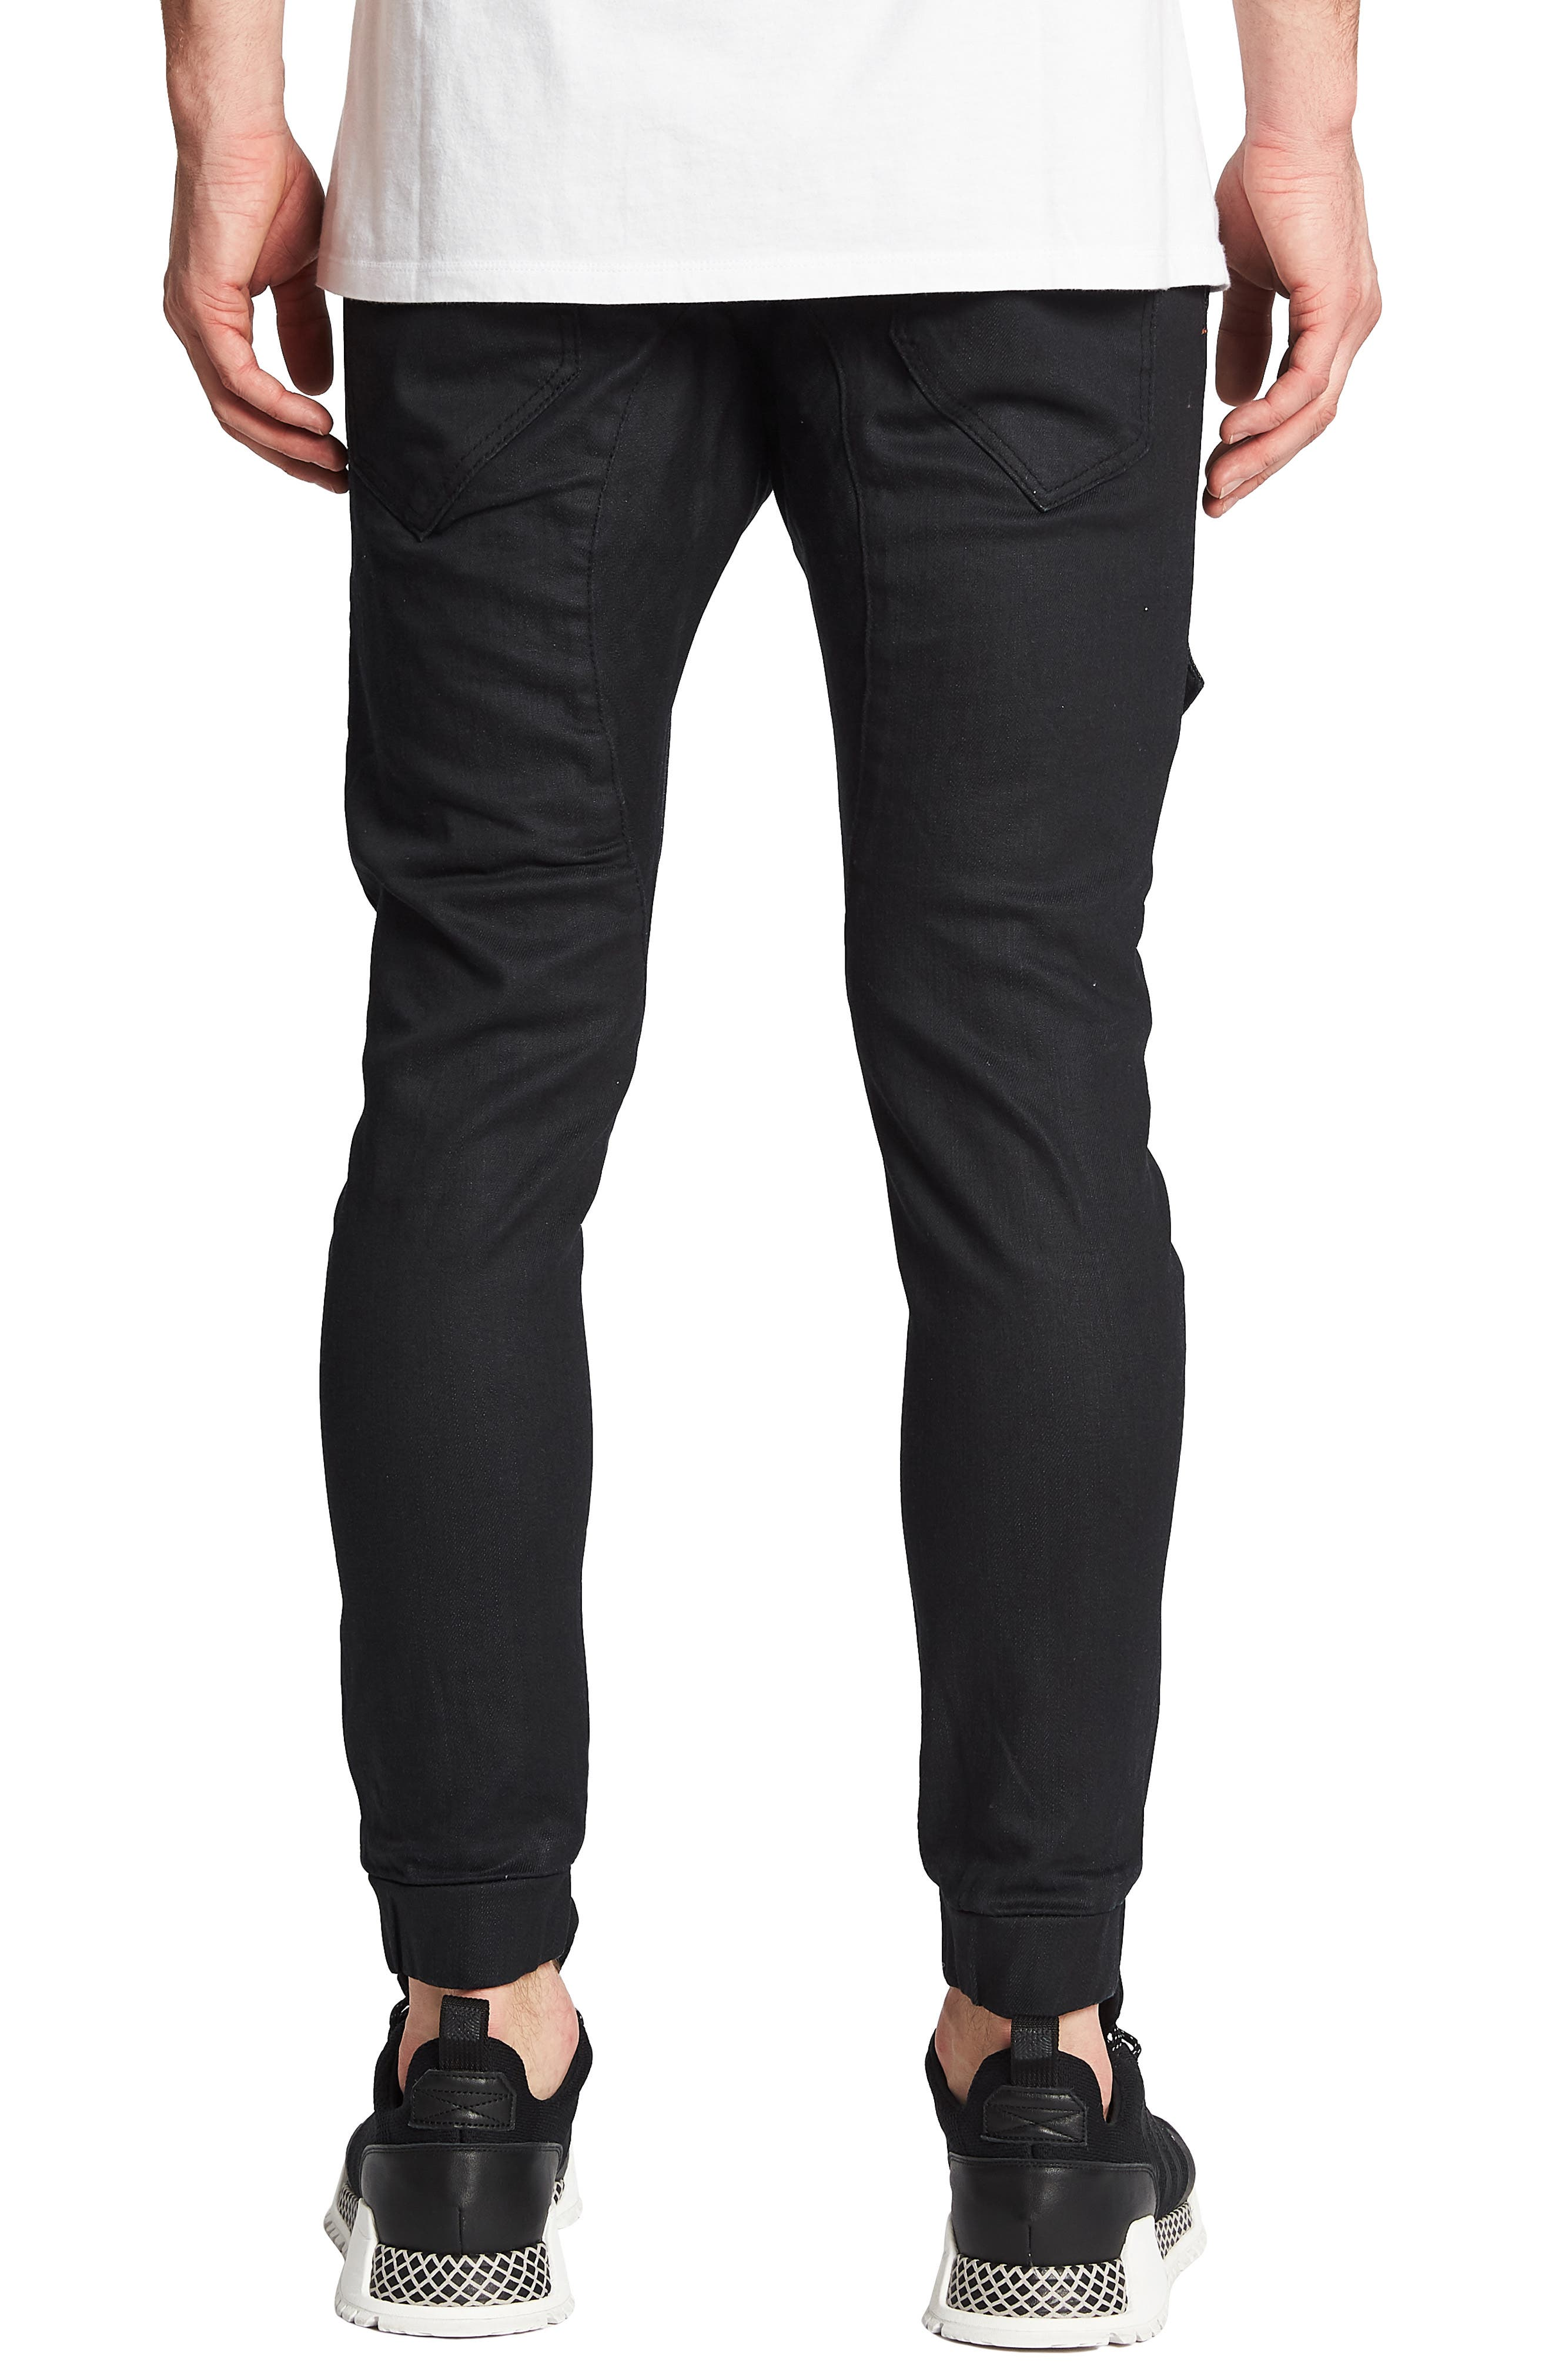 Flight Skinny Denim Jogger Pants,                             Alternate thumbnail 10, color,